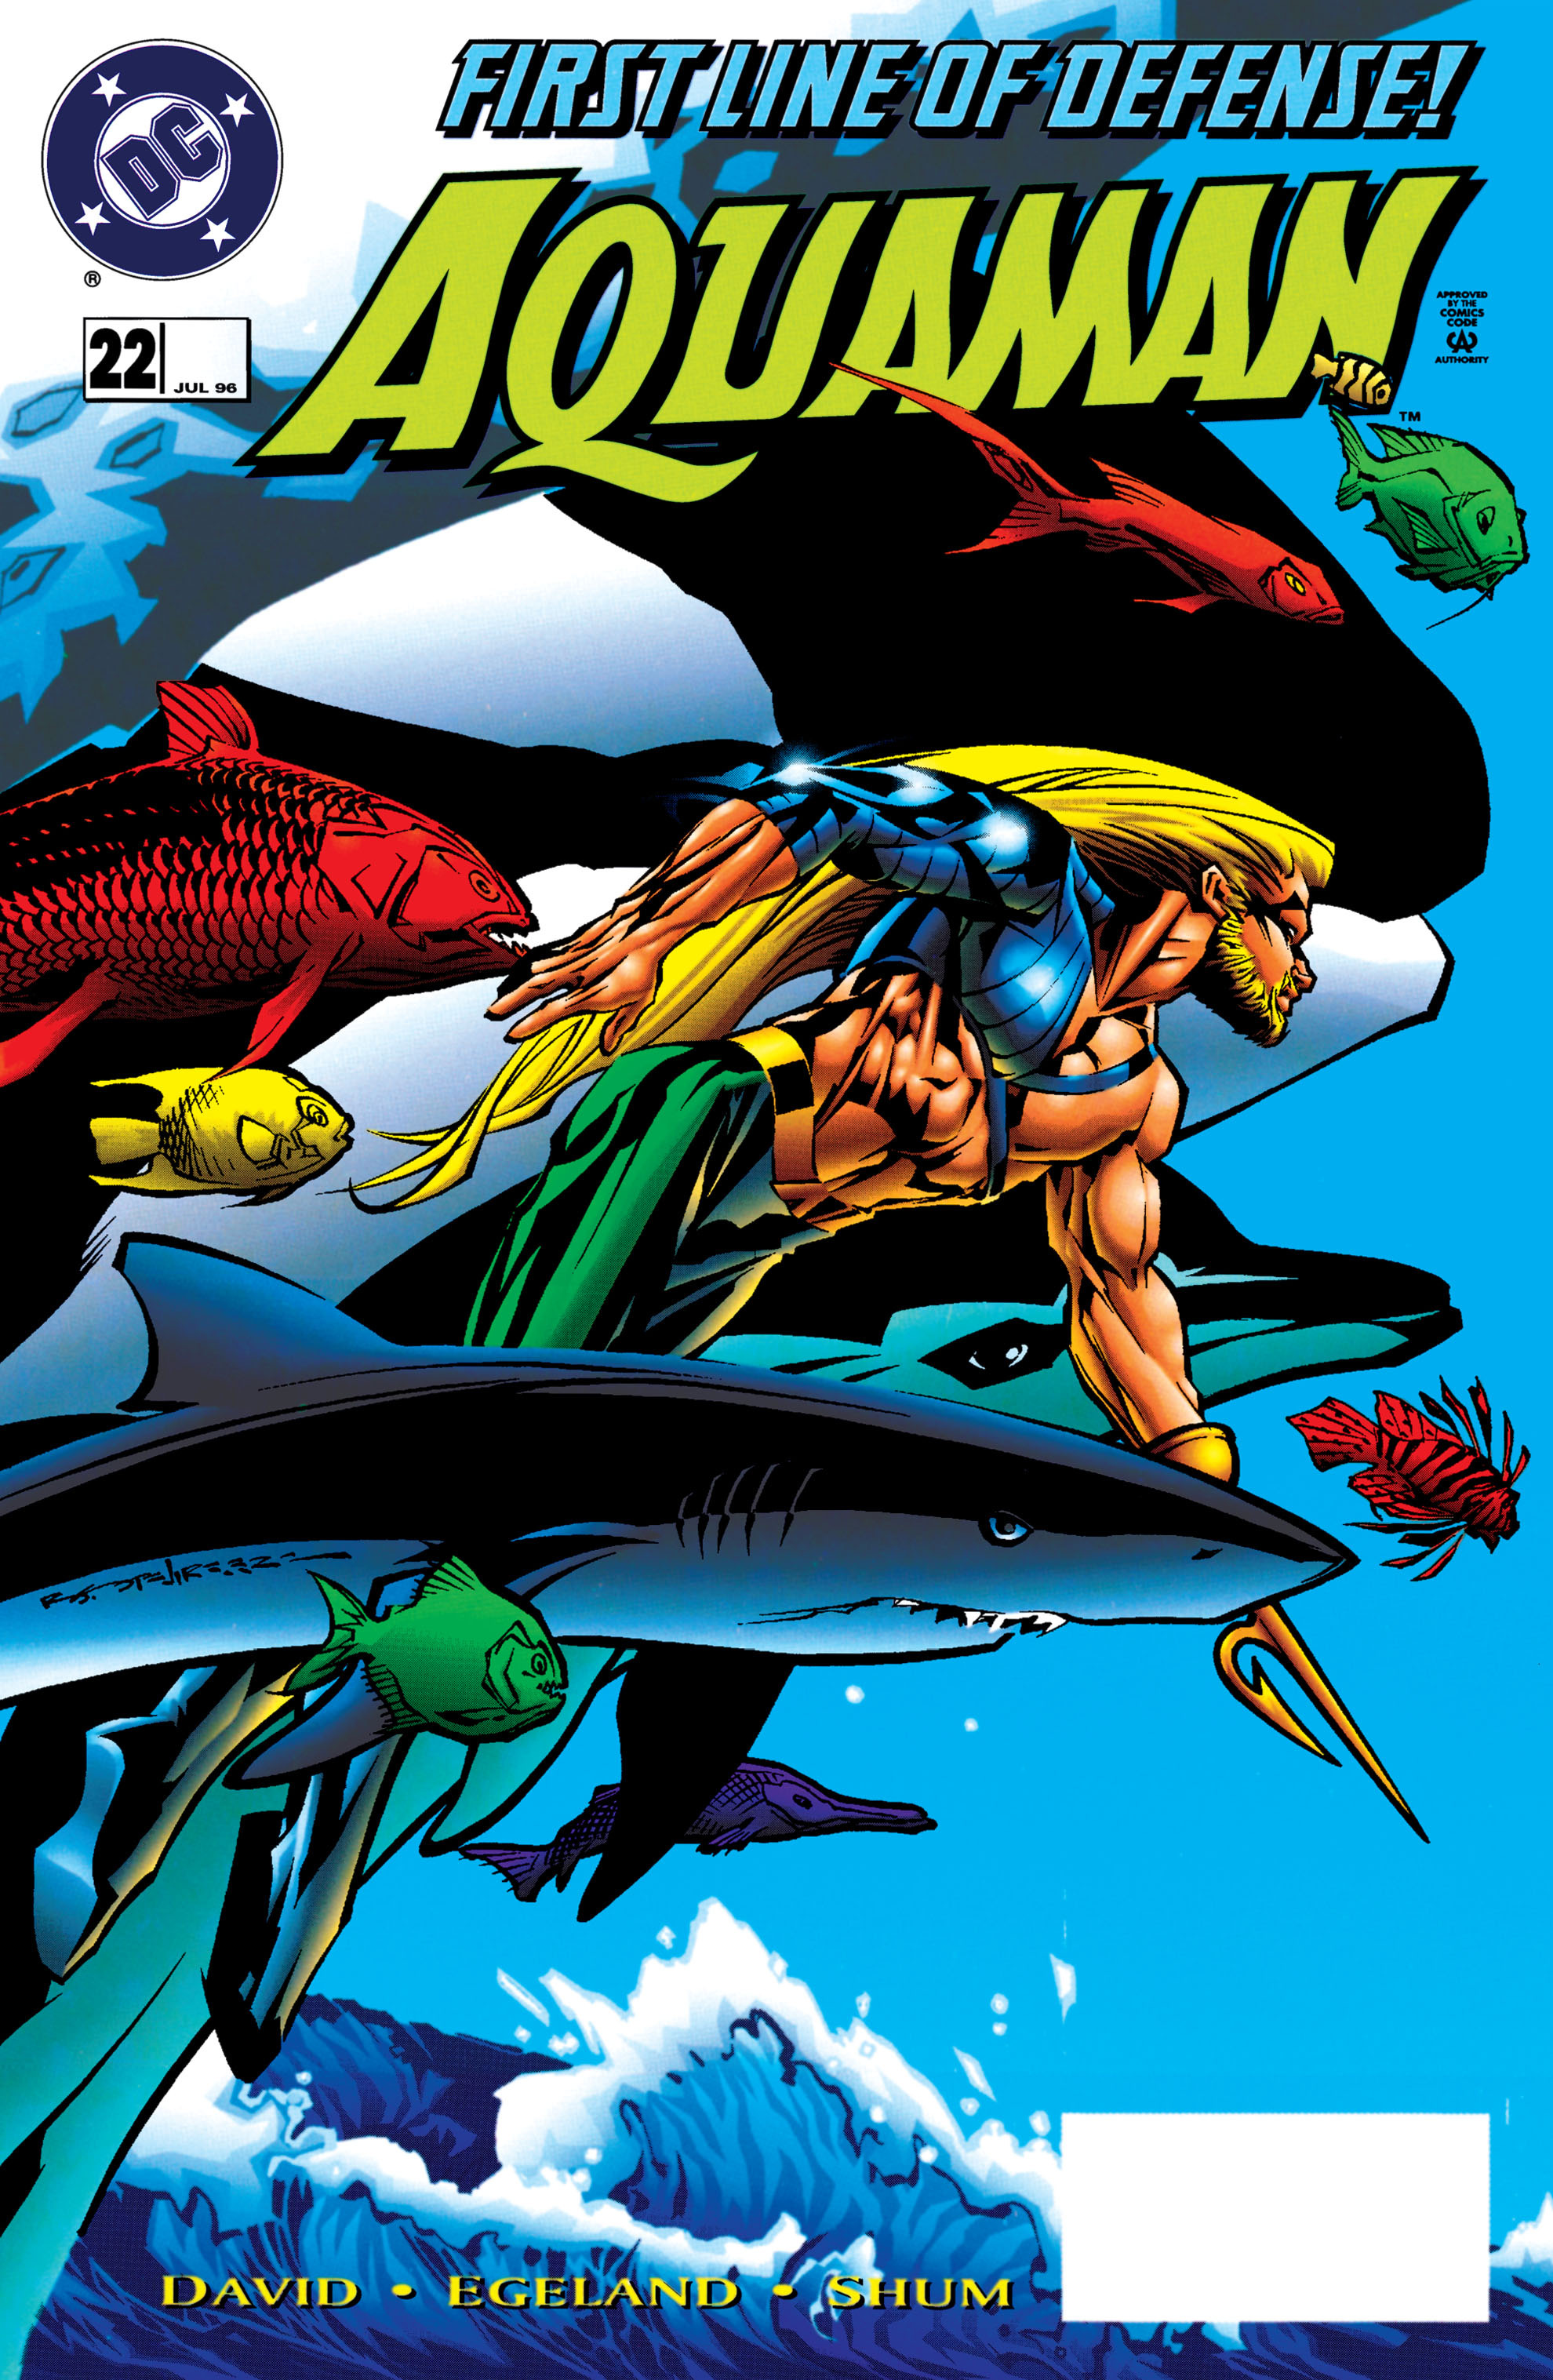 Read online Aquaman (1994) comic -  Issue #22 - 1